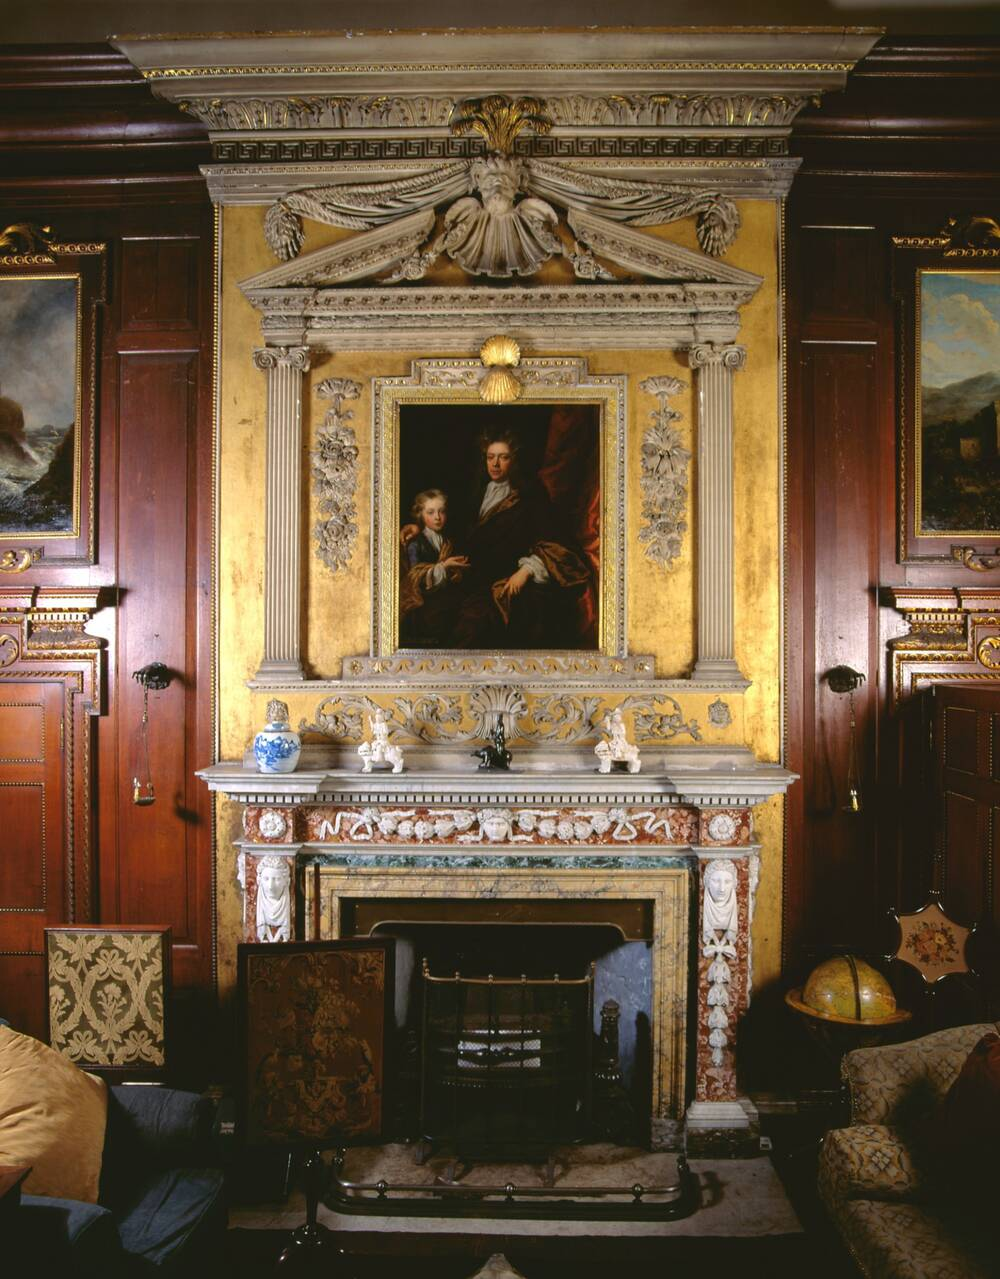 Newhailes library - the chimneypiece was installed in the 1740s by Sir James Dalyrmple (seen in the portrait)